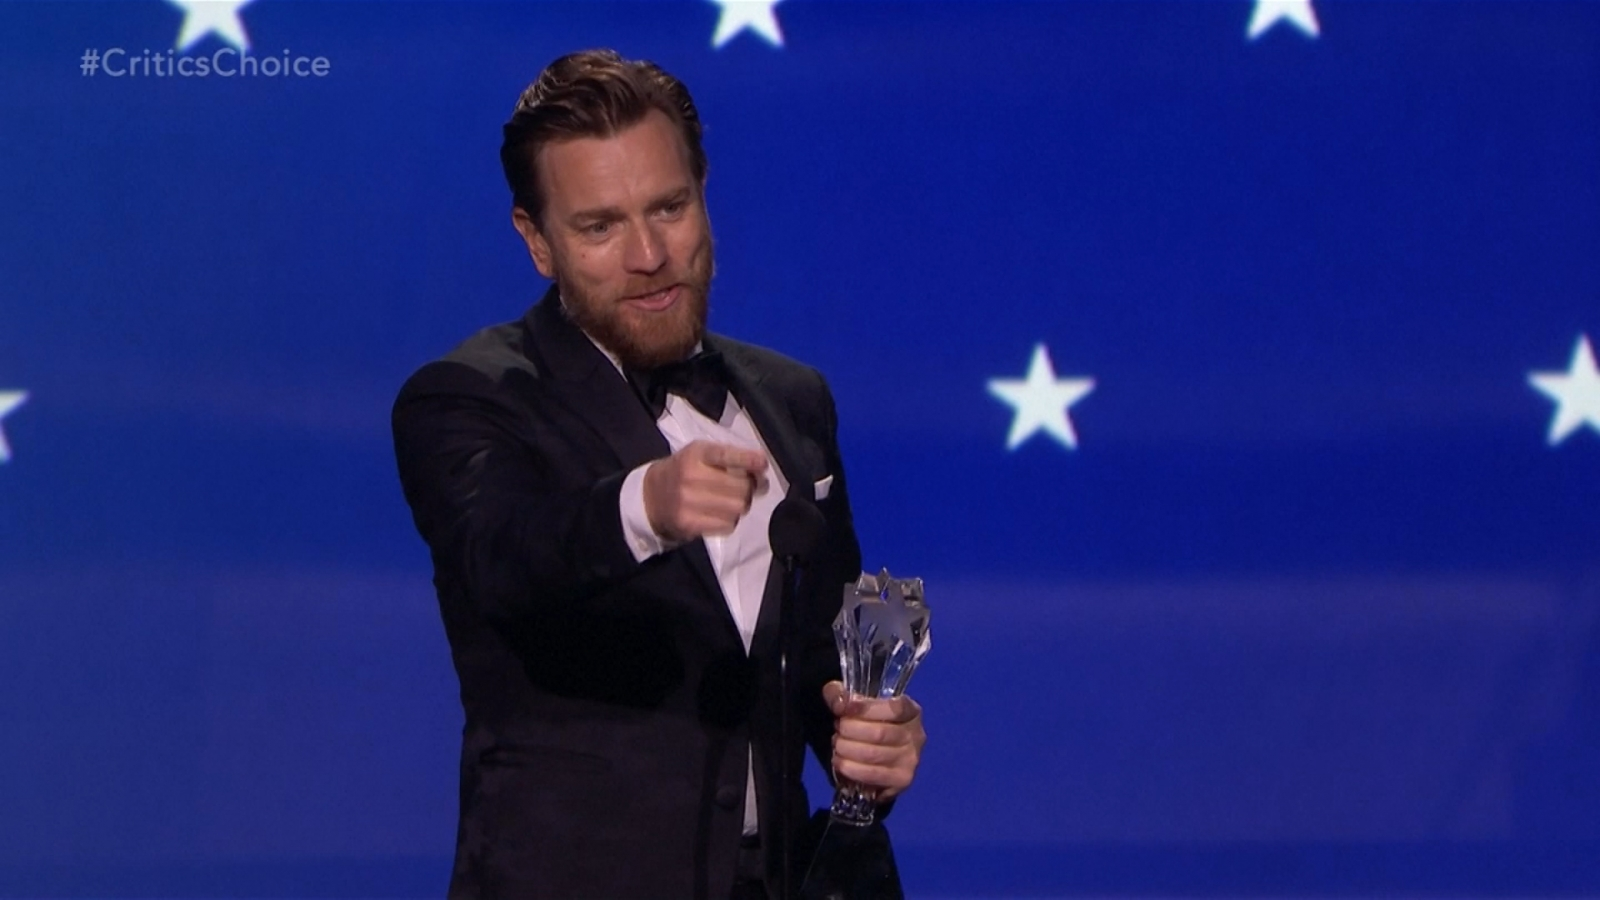 Ewan McGregor ignores wife, snogs Mary Elizabeth Winstead at Critics' Choice Awards